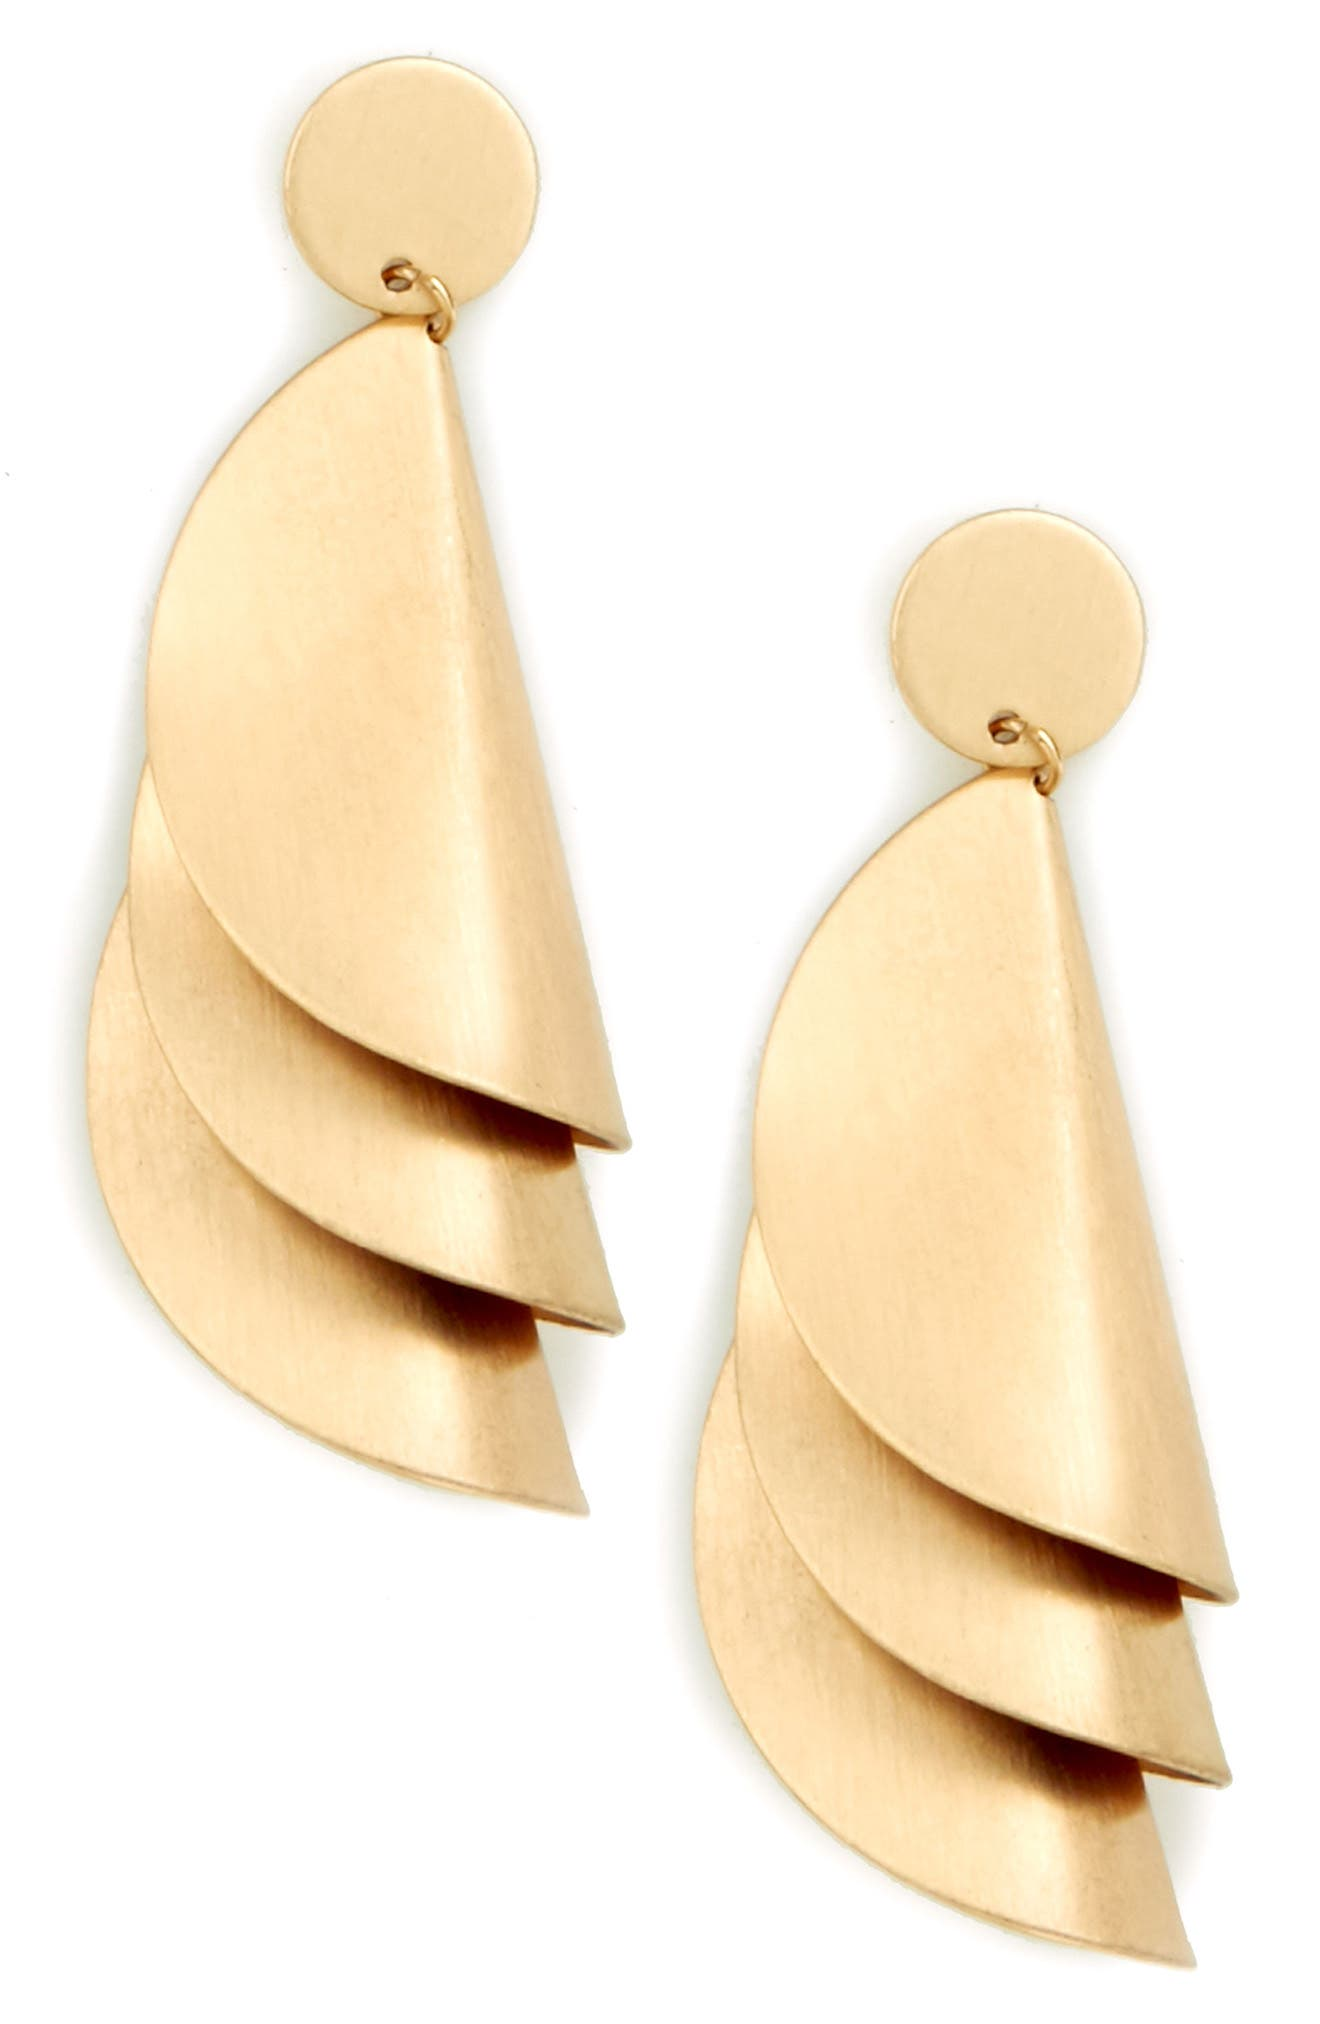 Fossil Cove Statement Earrings,                             Main thumbnail 1, color,                             Gold